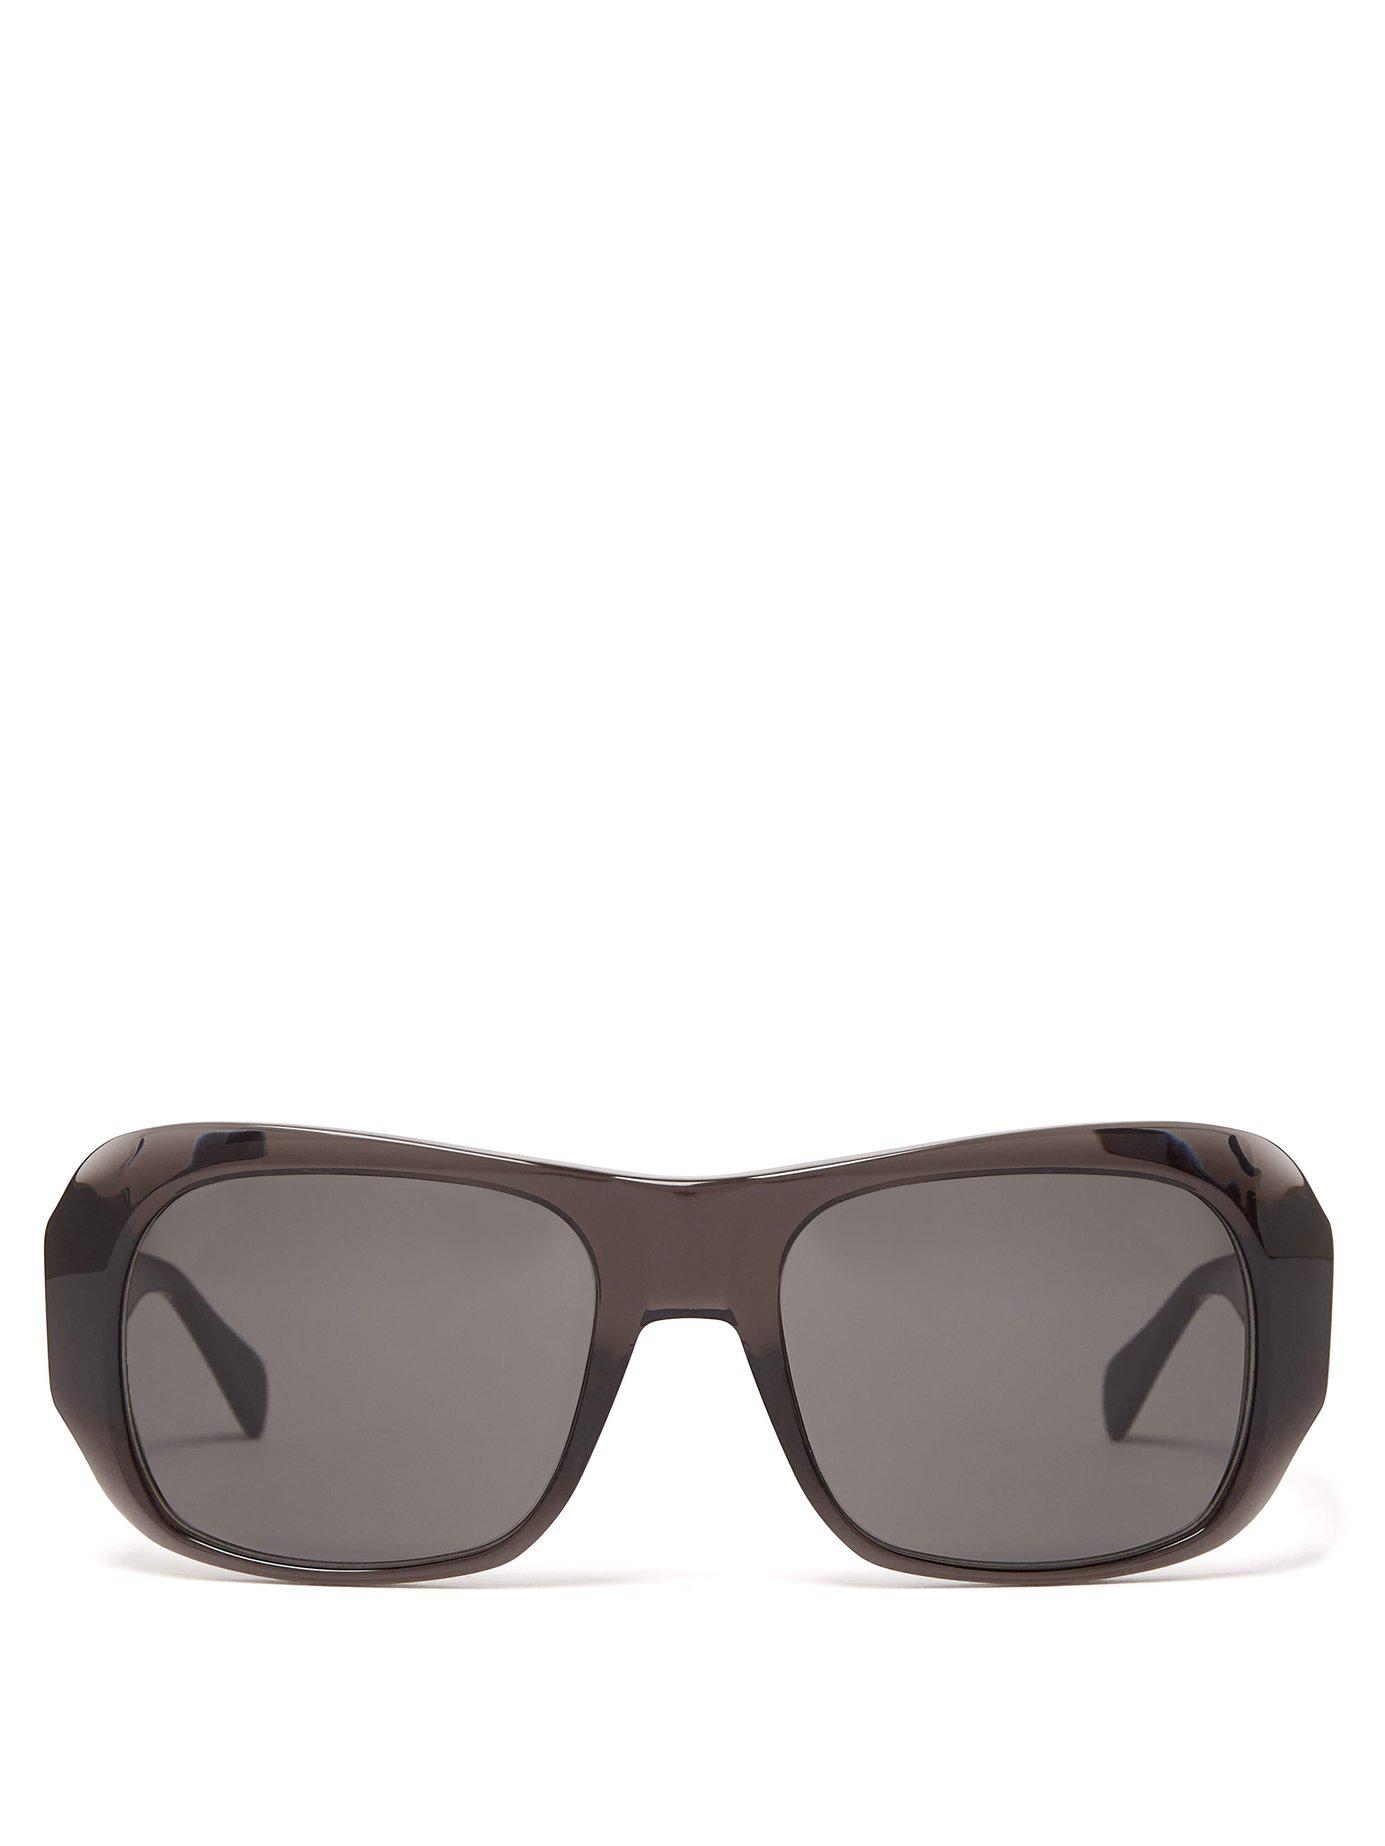 6e8ed23bc4a6 Lyst - Céline Round Edge Acetate Sunglasses in Gray